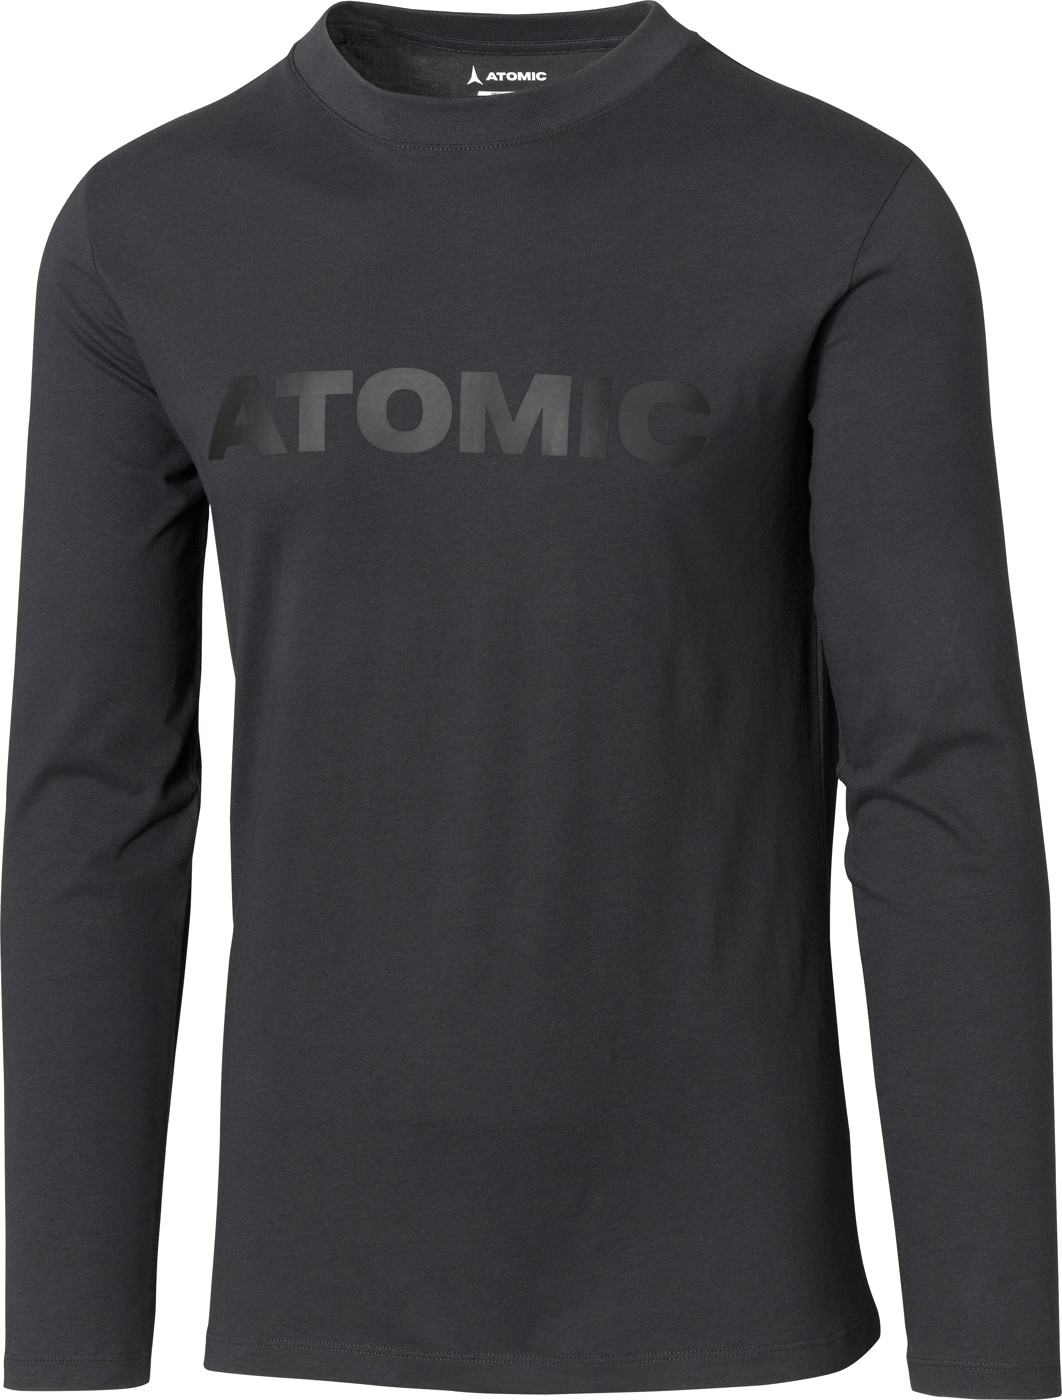 ATOMIC ALPS LS T-SHIRT Anthracite L - Herren